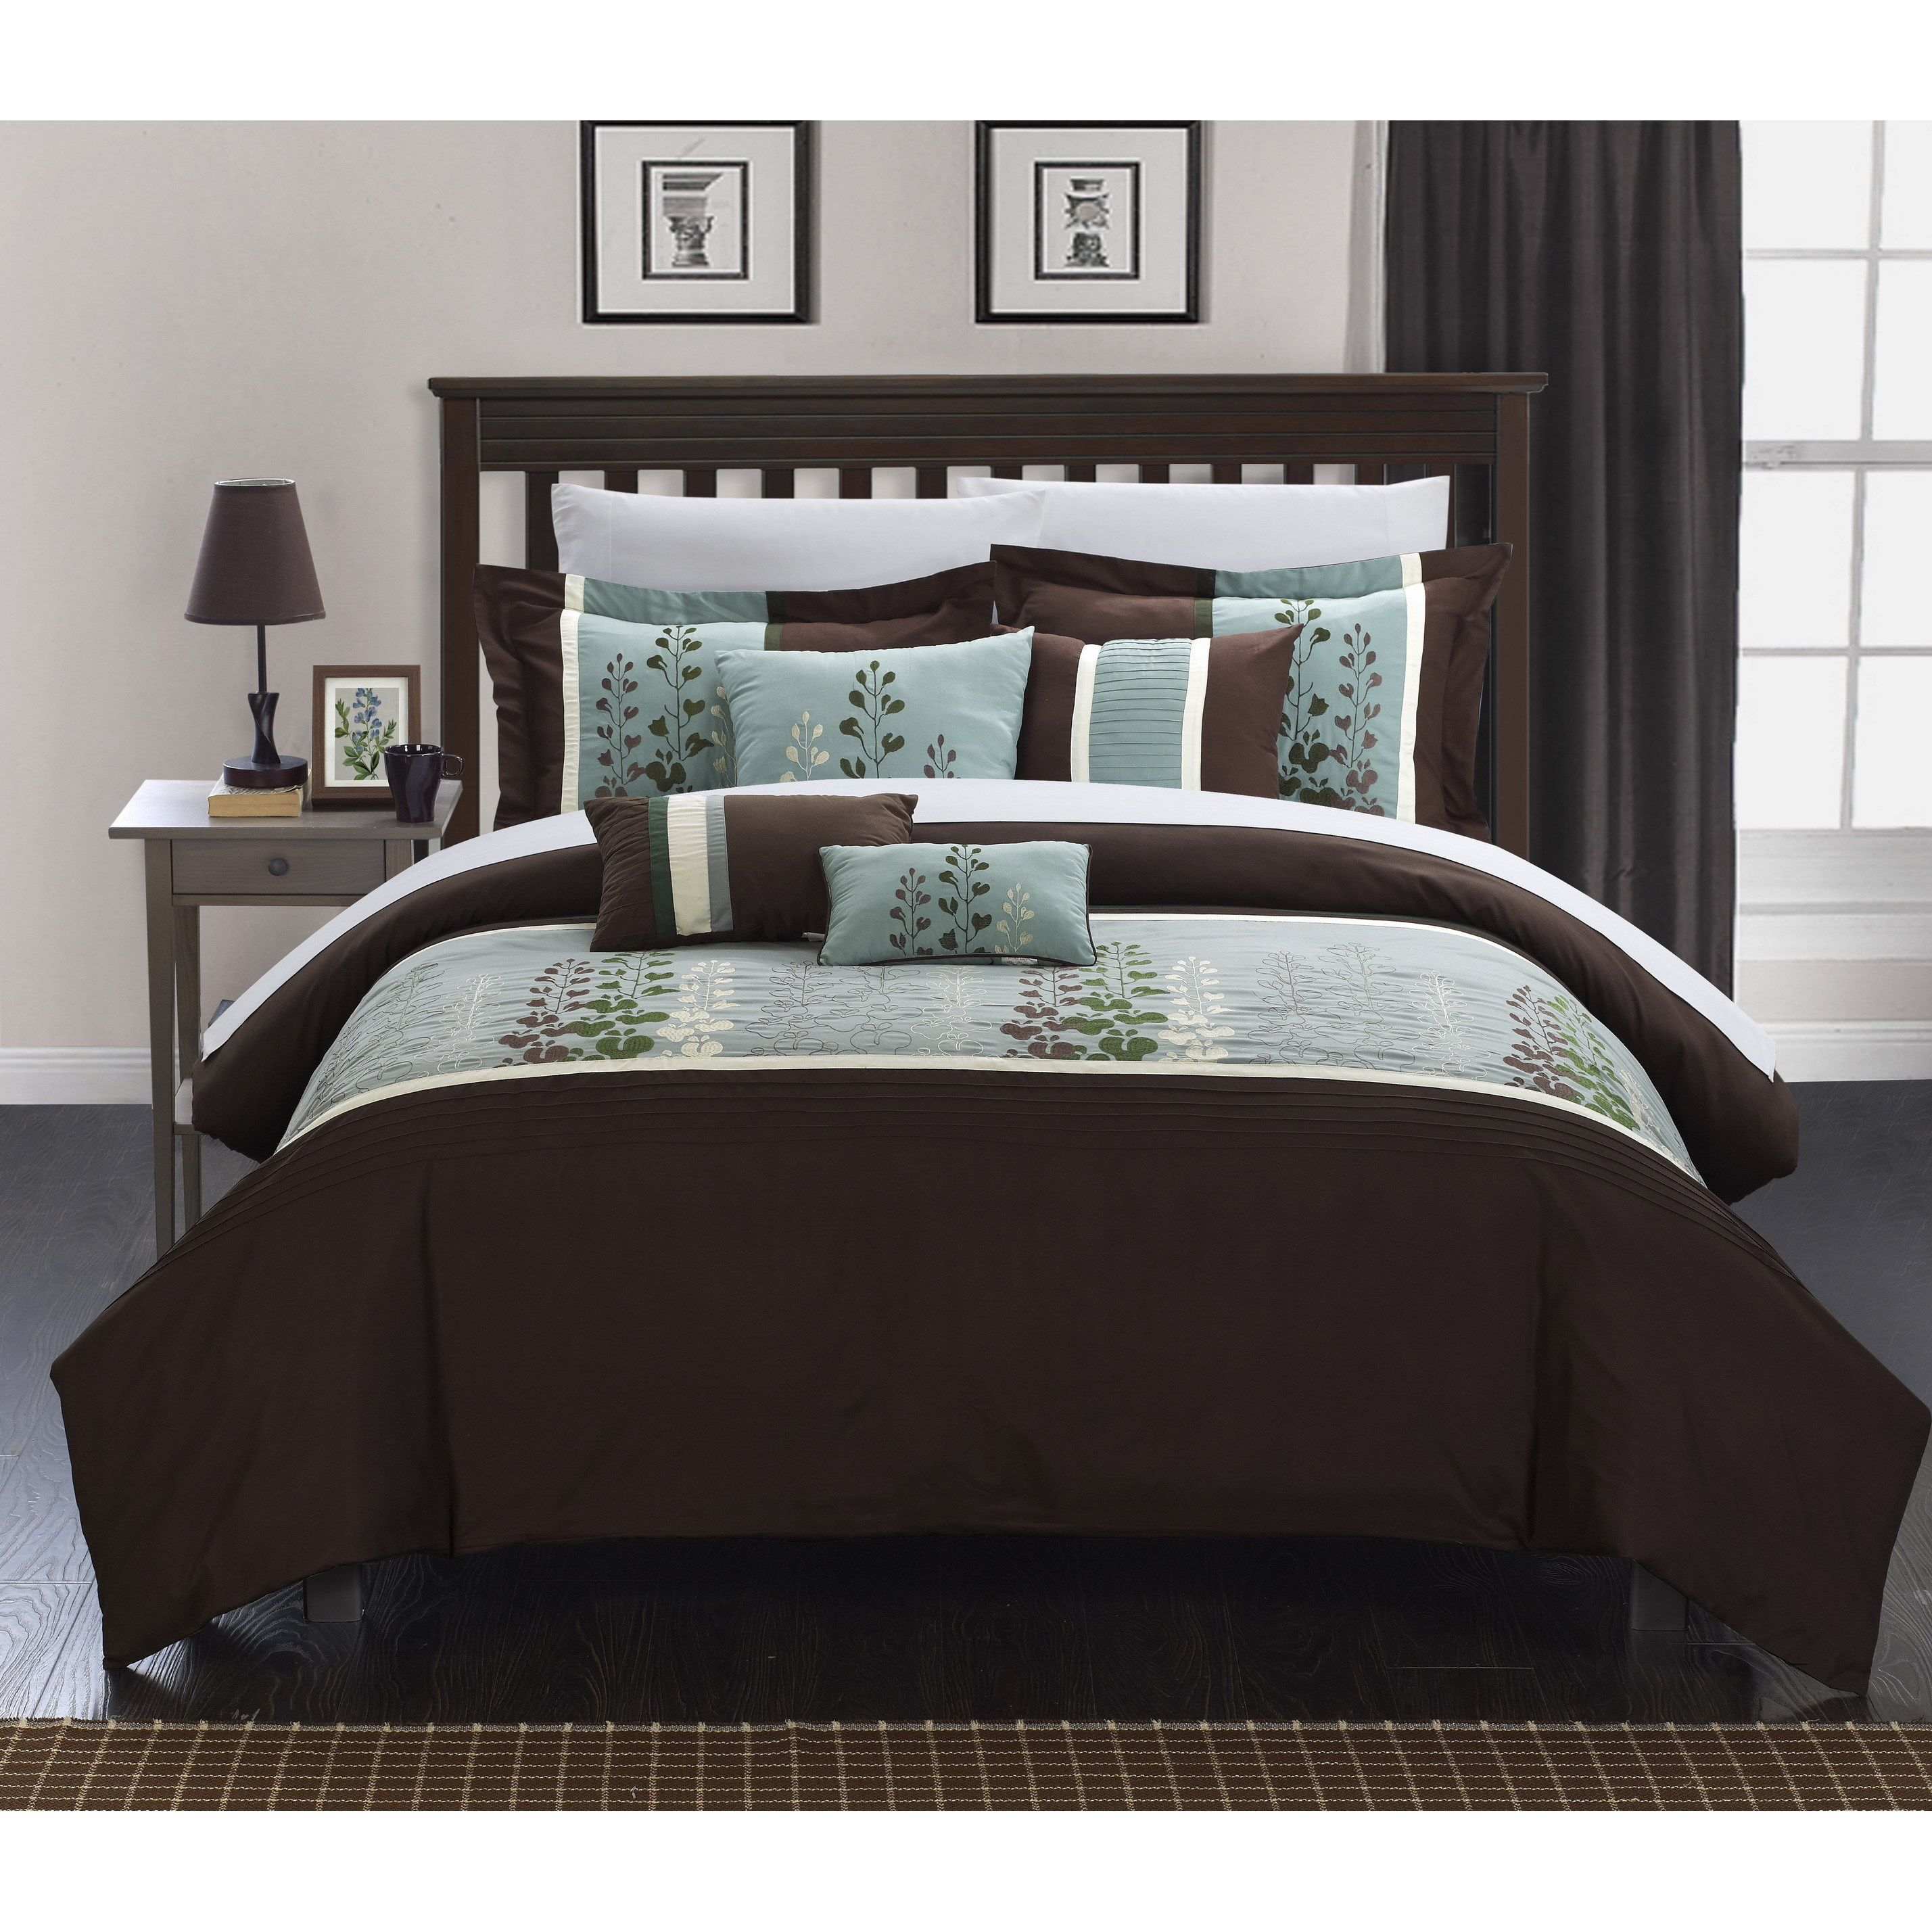 Dress your room with this Evania forter set Brown beige and